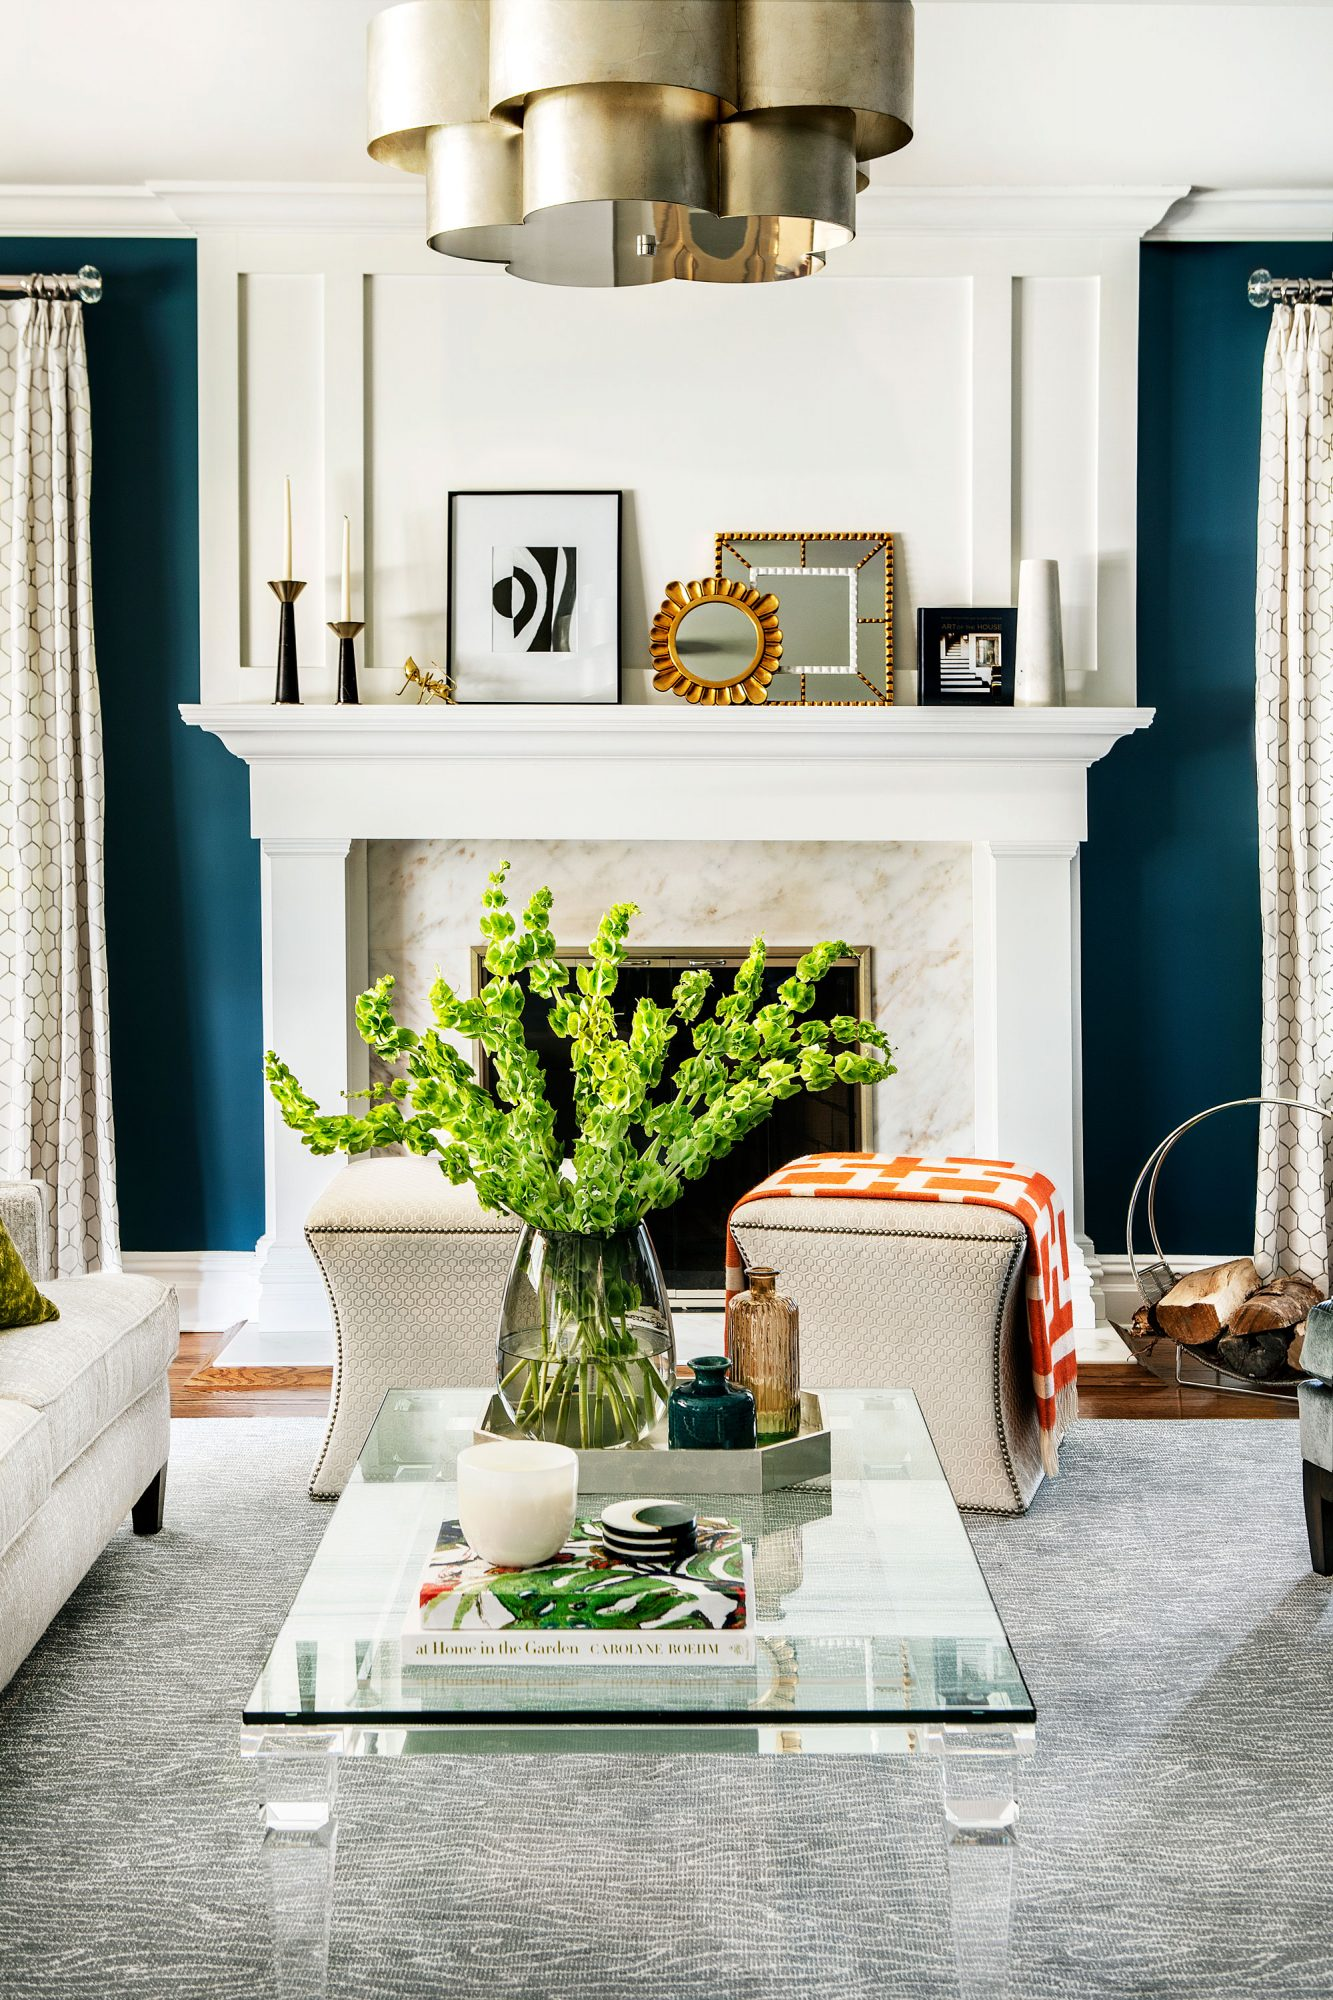 Living Room with White Fireplace and Large Green Plant on the White Coffee Table